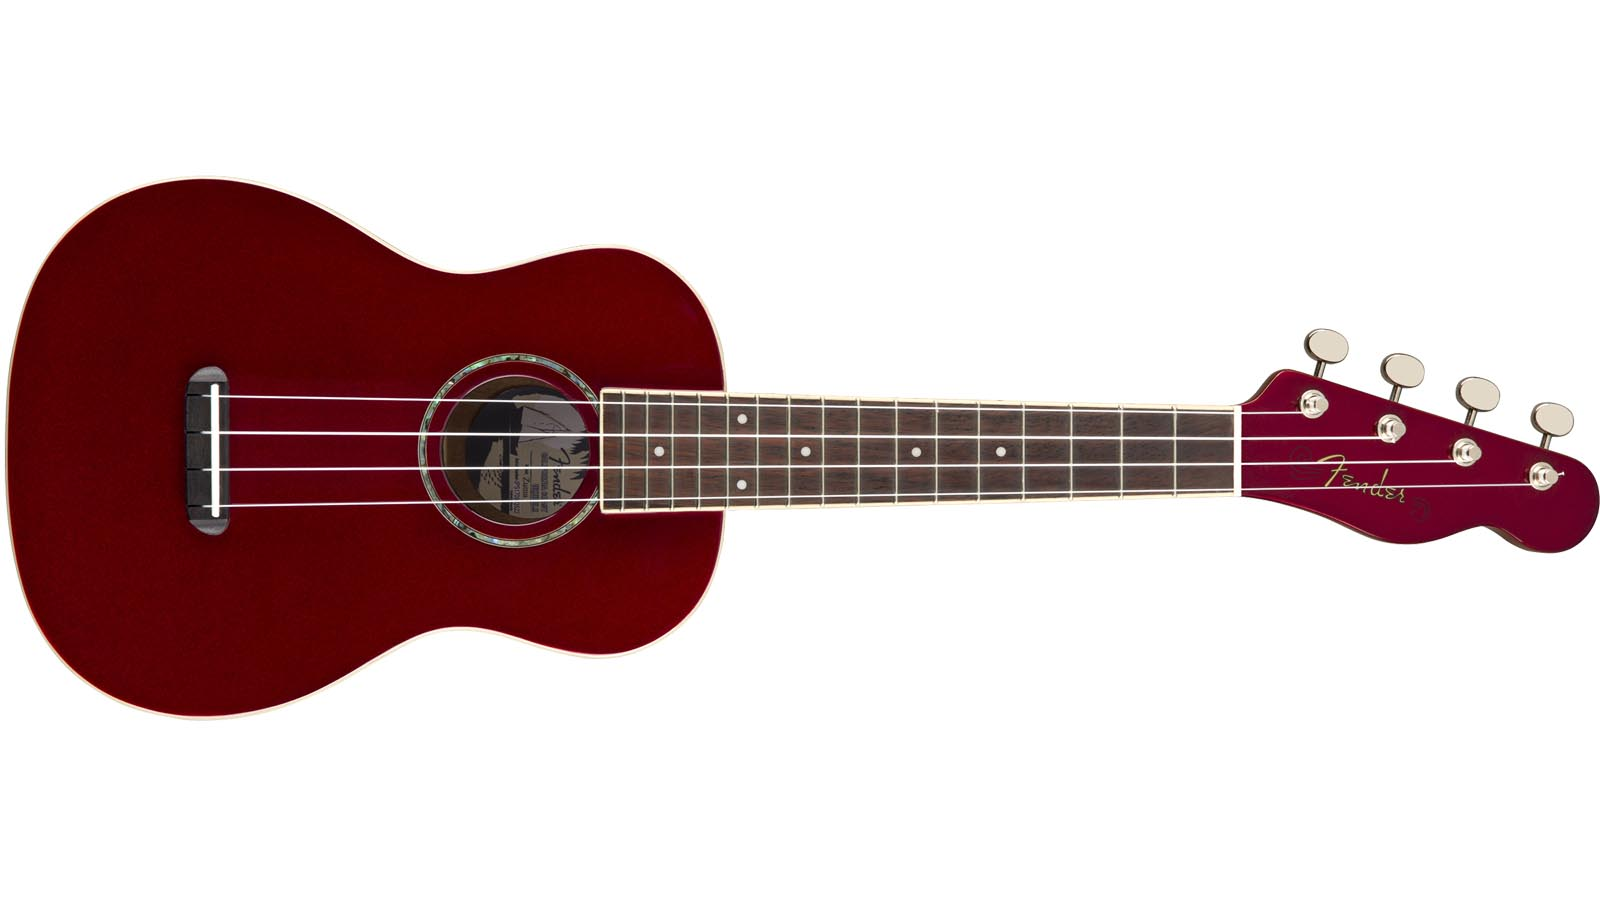 Fender Zuma Concert Ukulele CAR Candy Apple Red